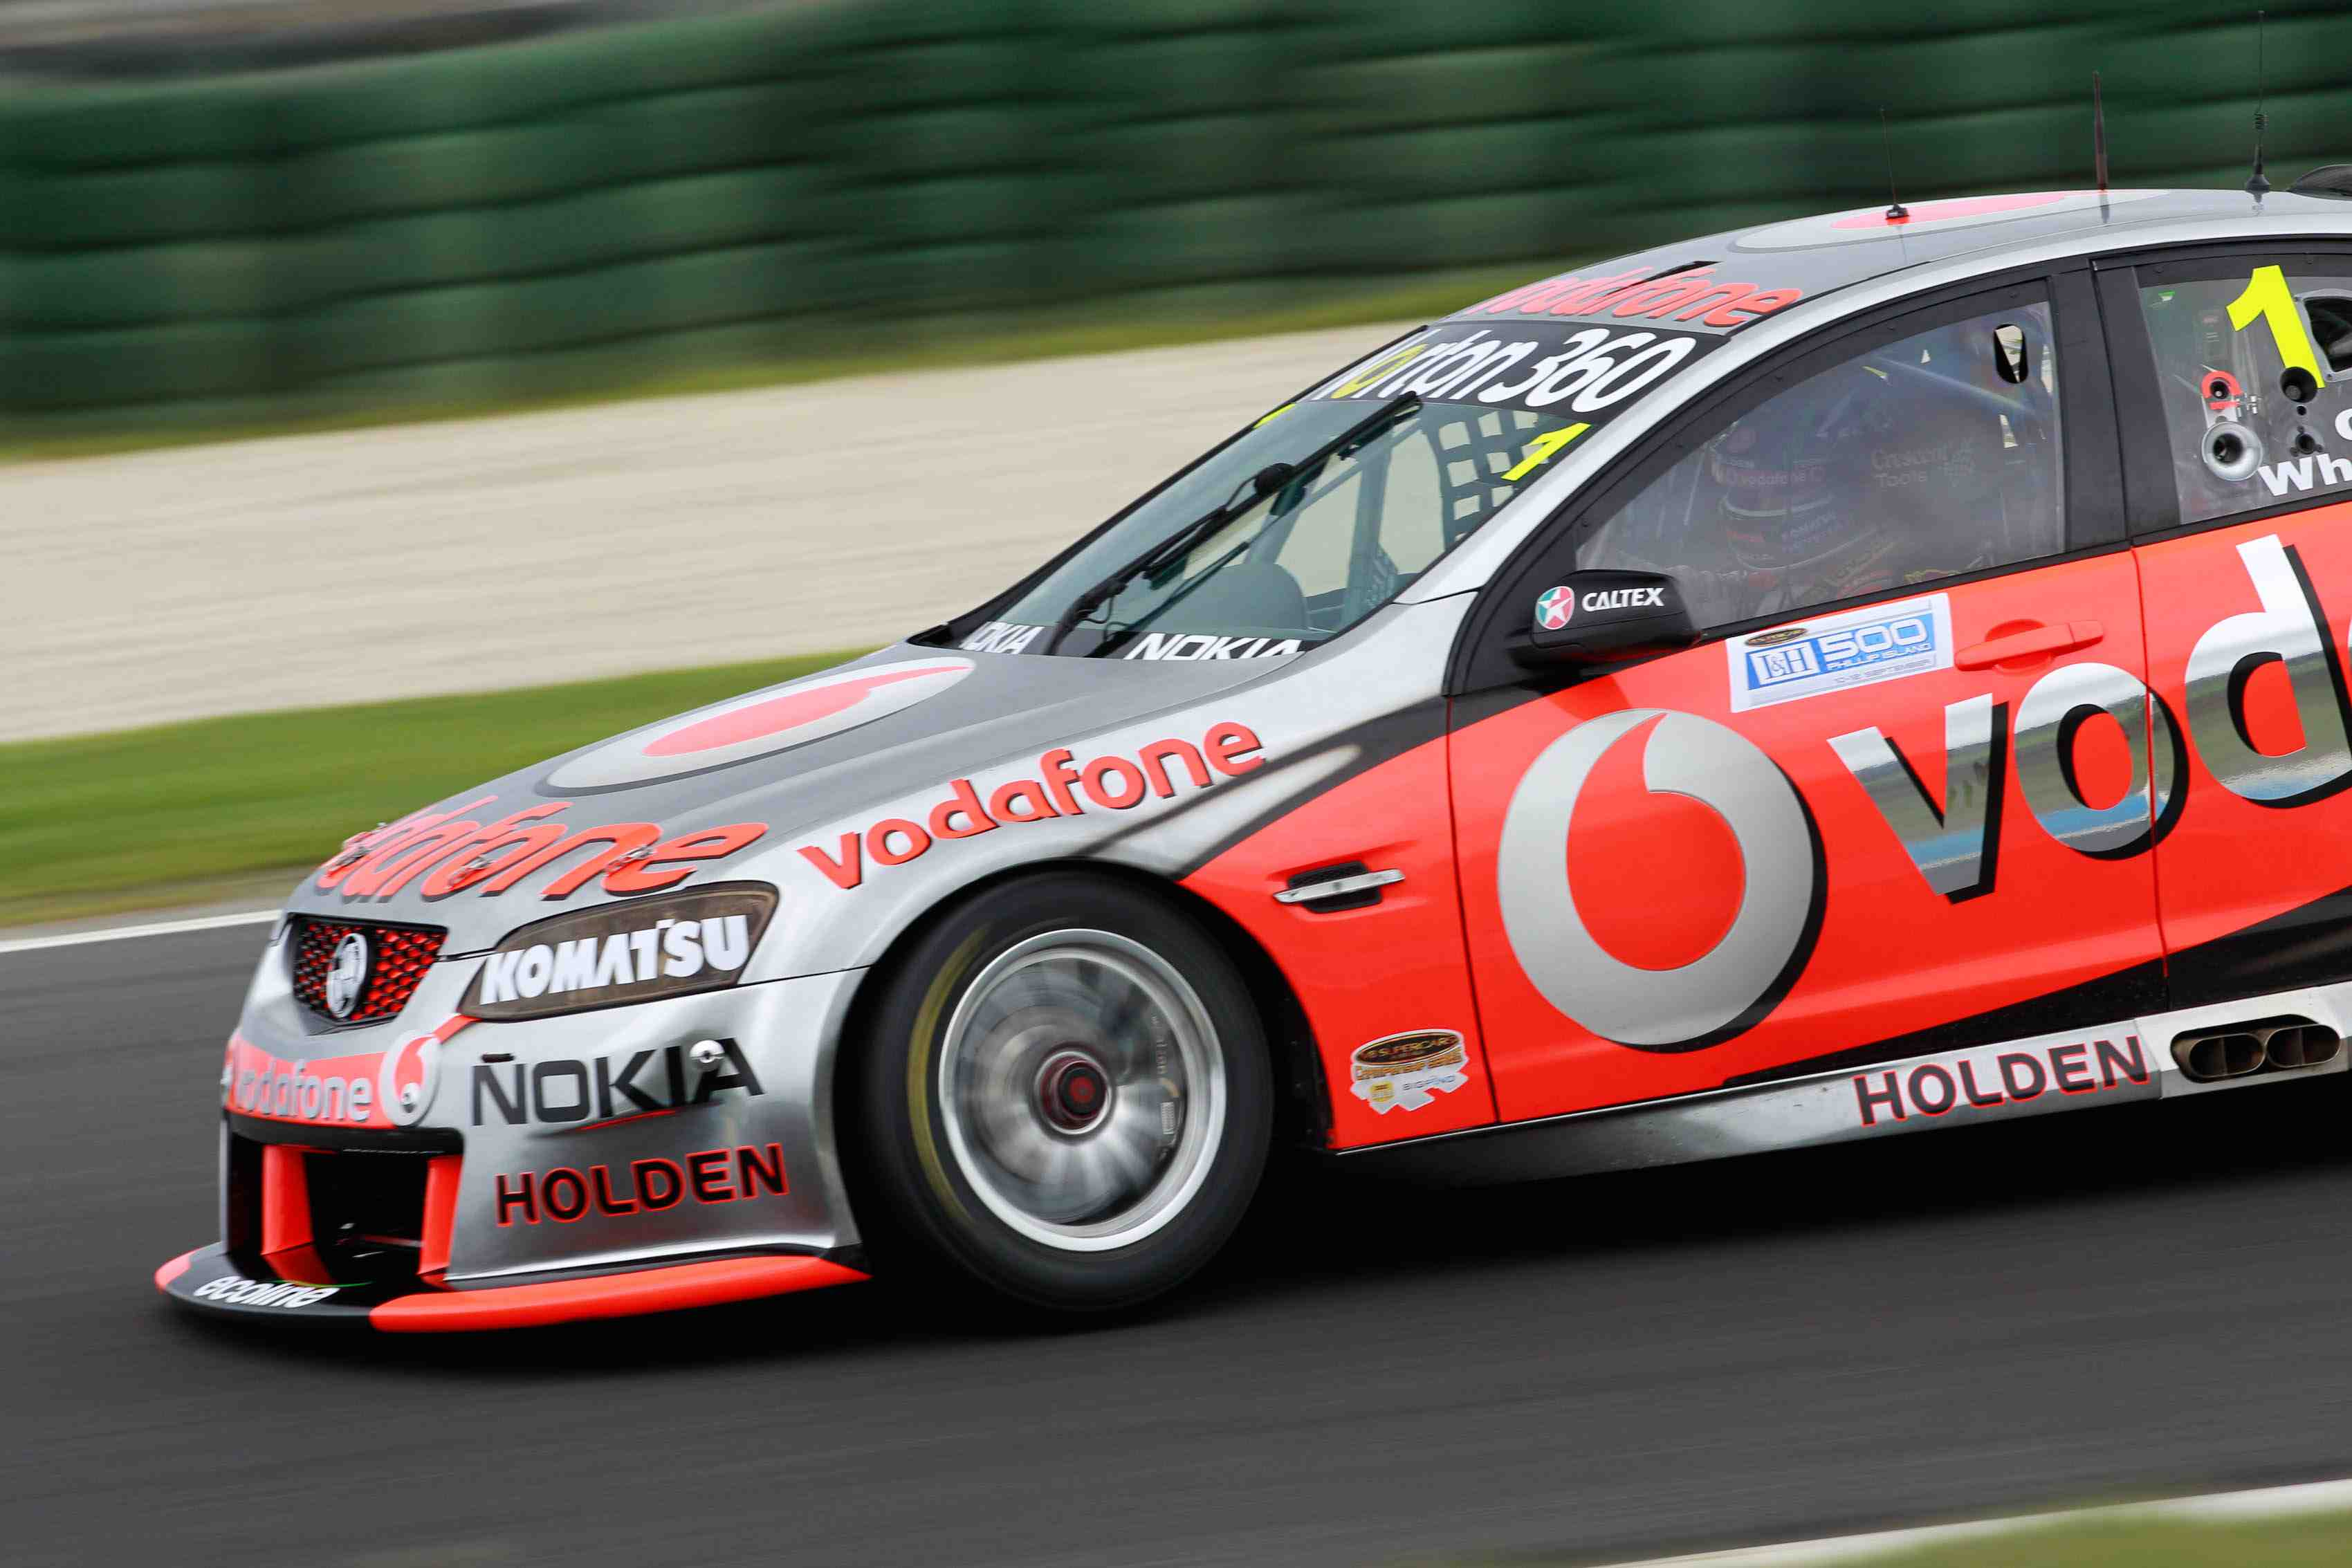 Qualifying Race, Driver 2, Kelly win, Whincup pole